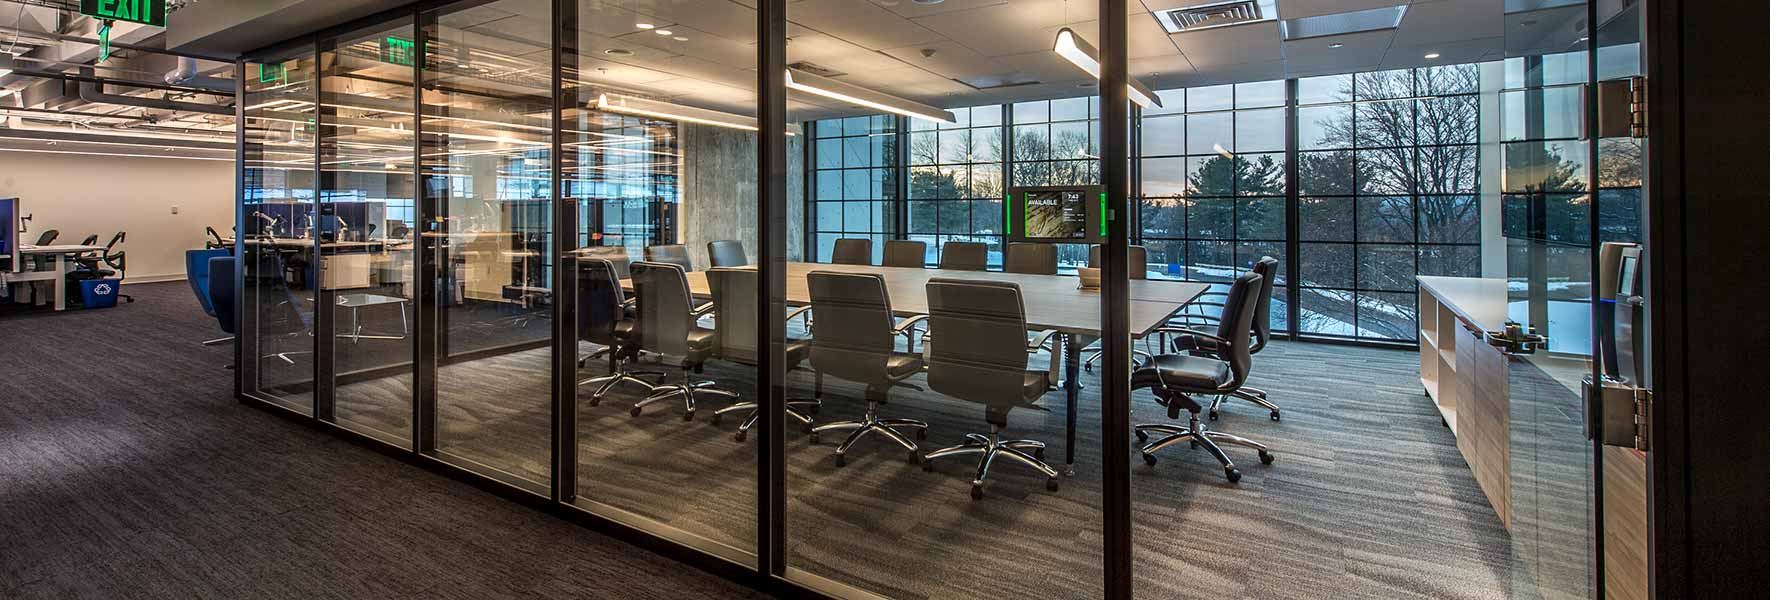 conference room built with demountable walls